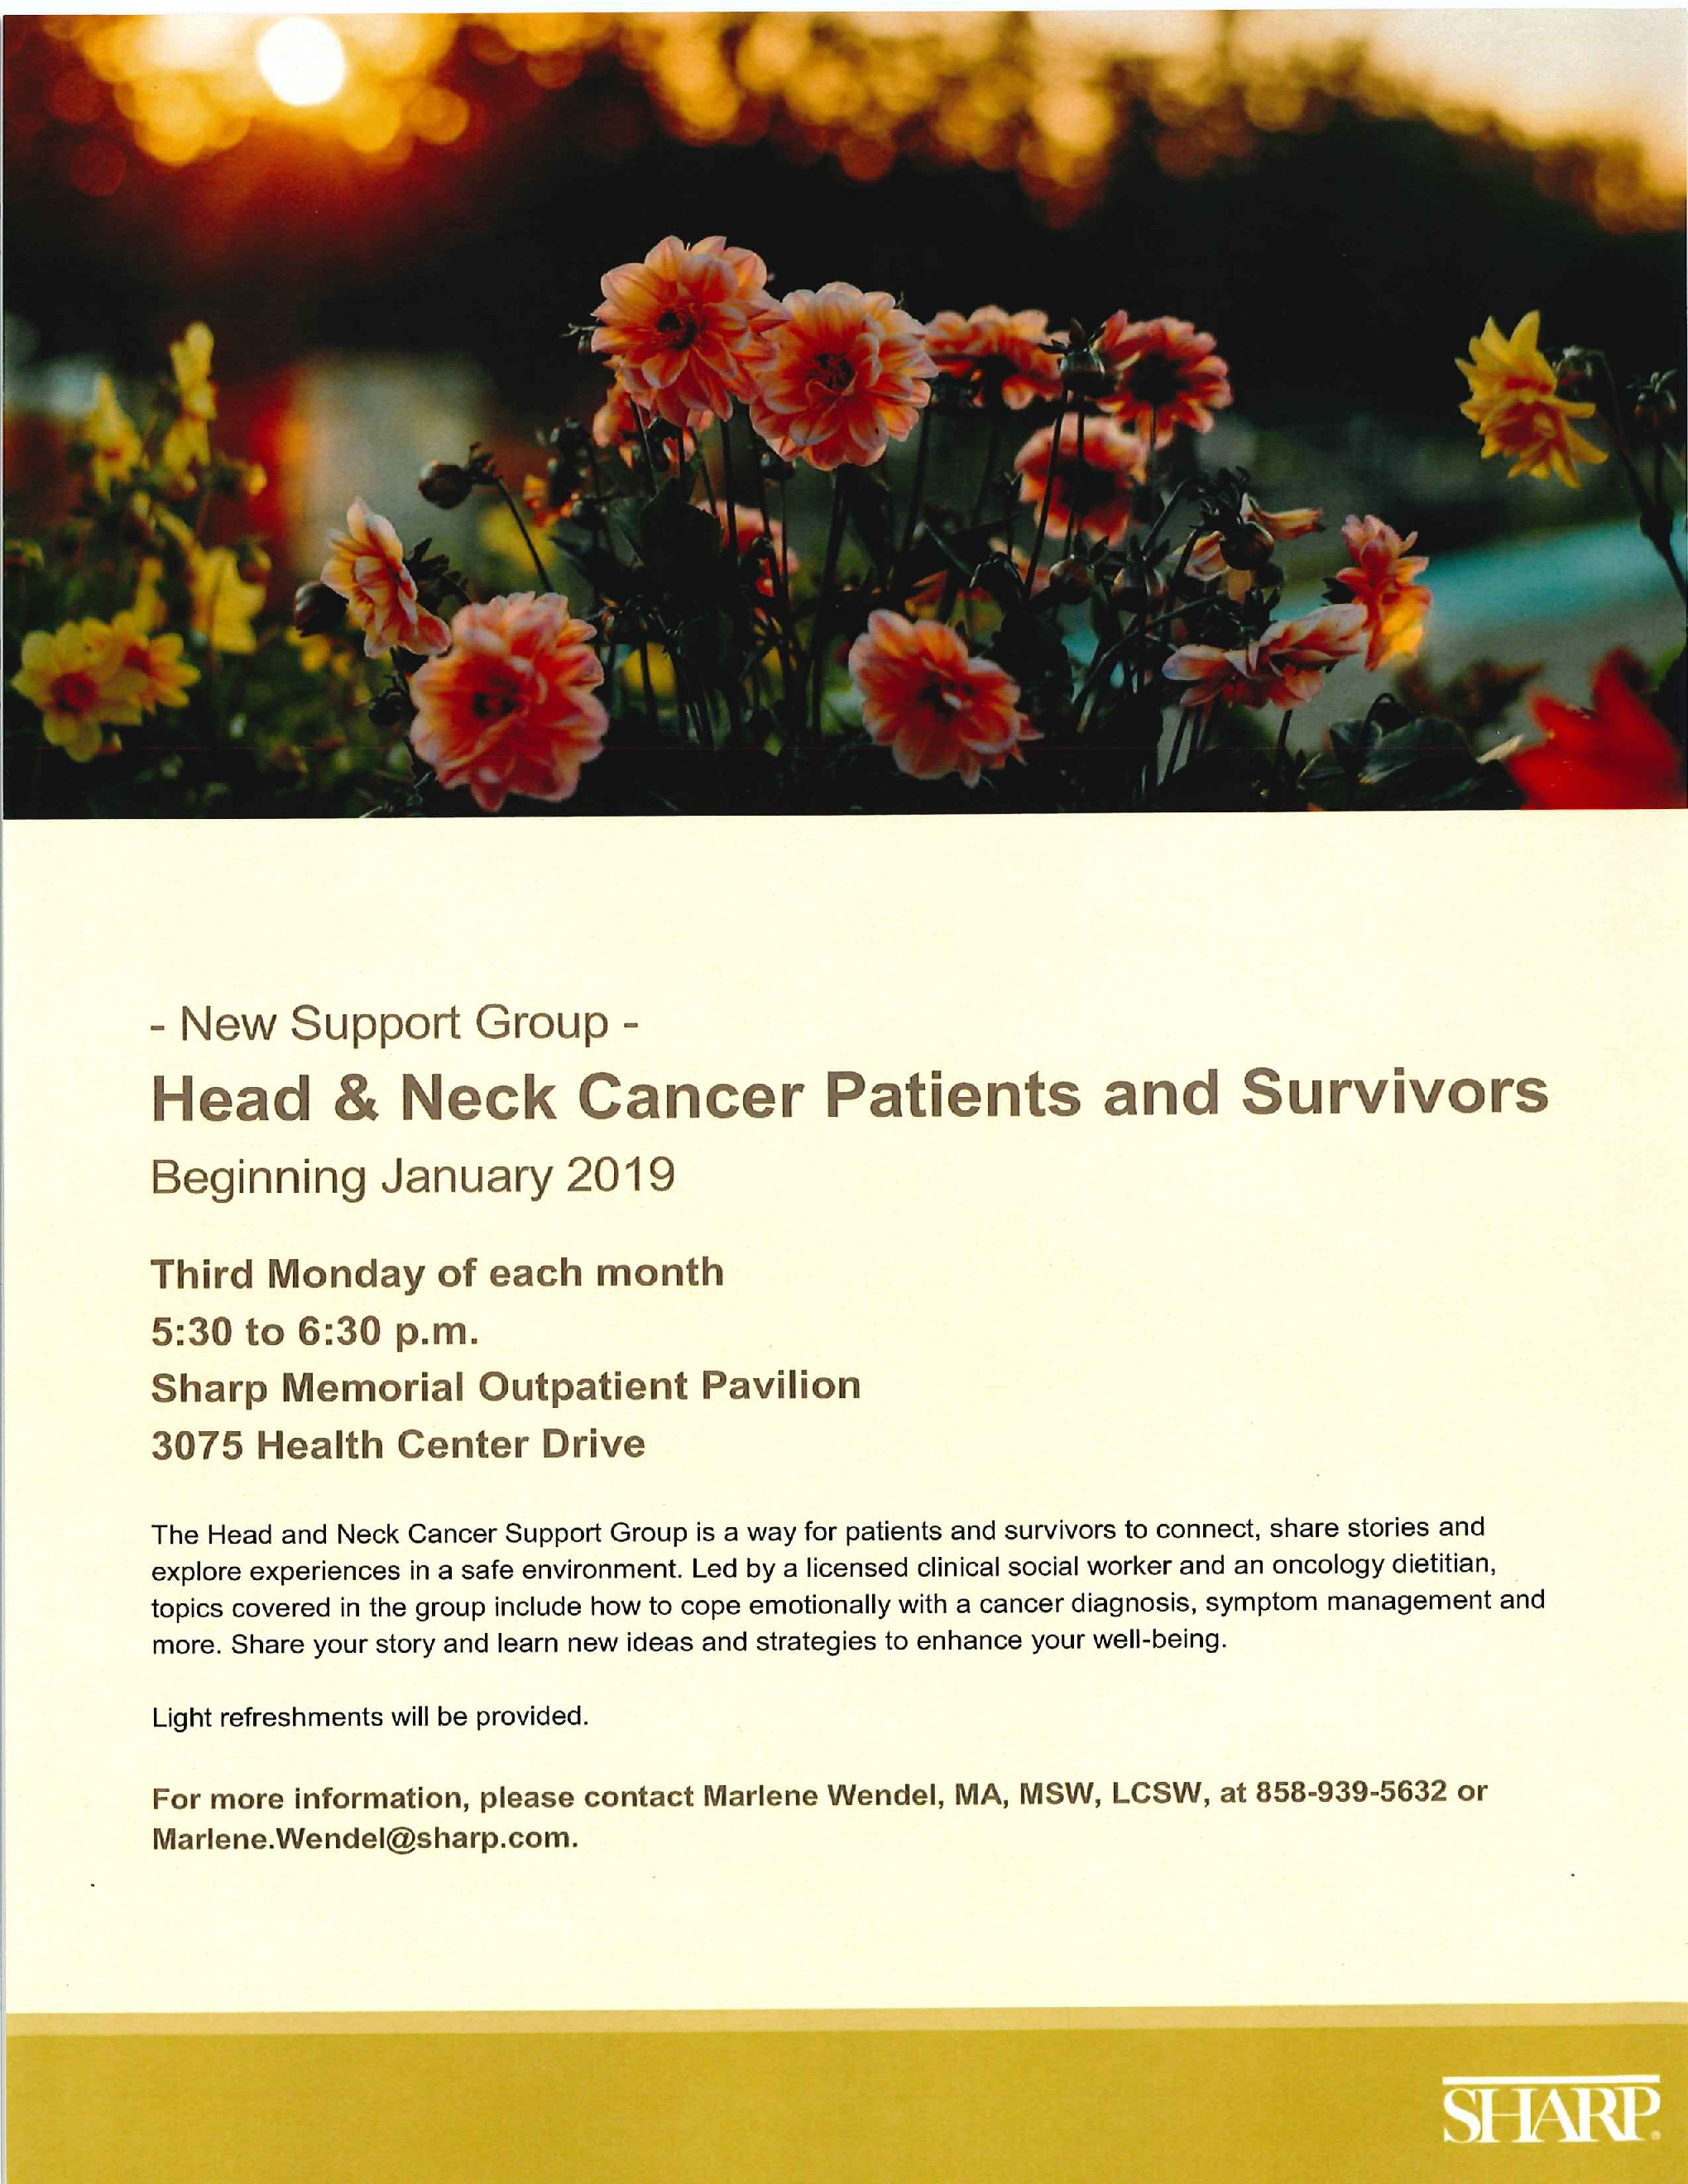 Head and Neck Cancer Patients and Survivors Support Group